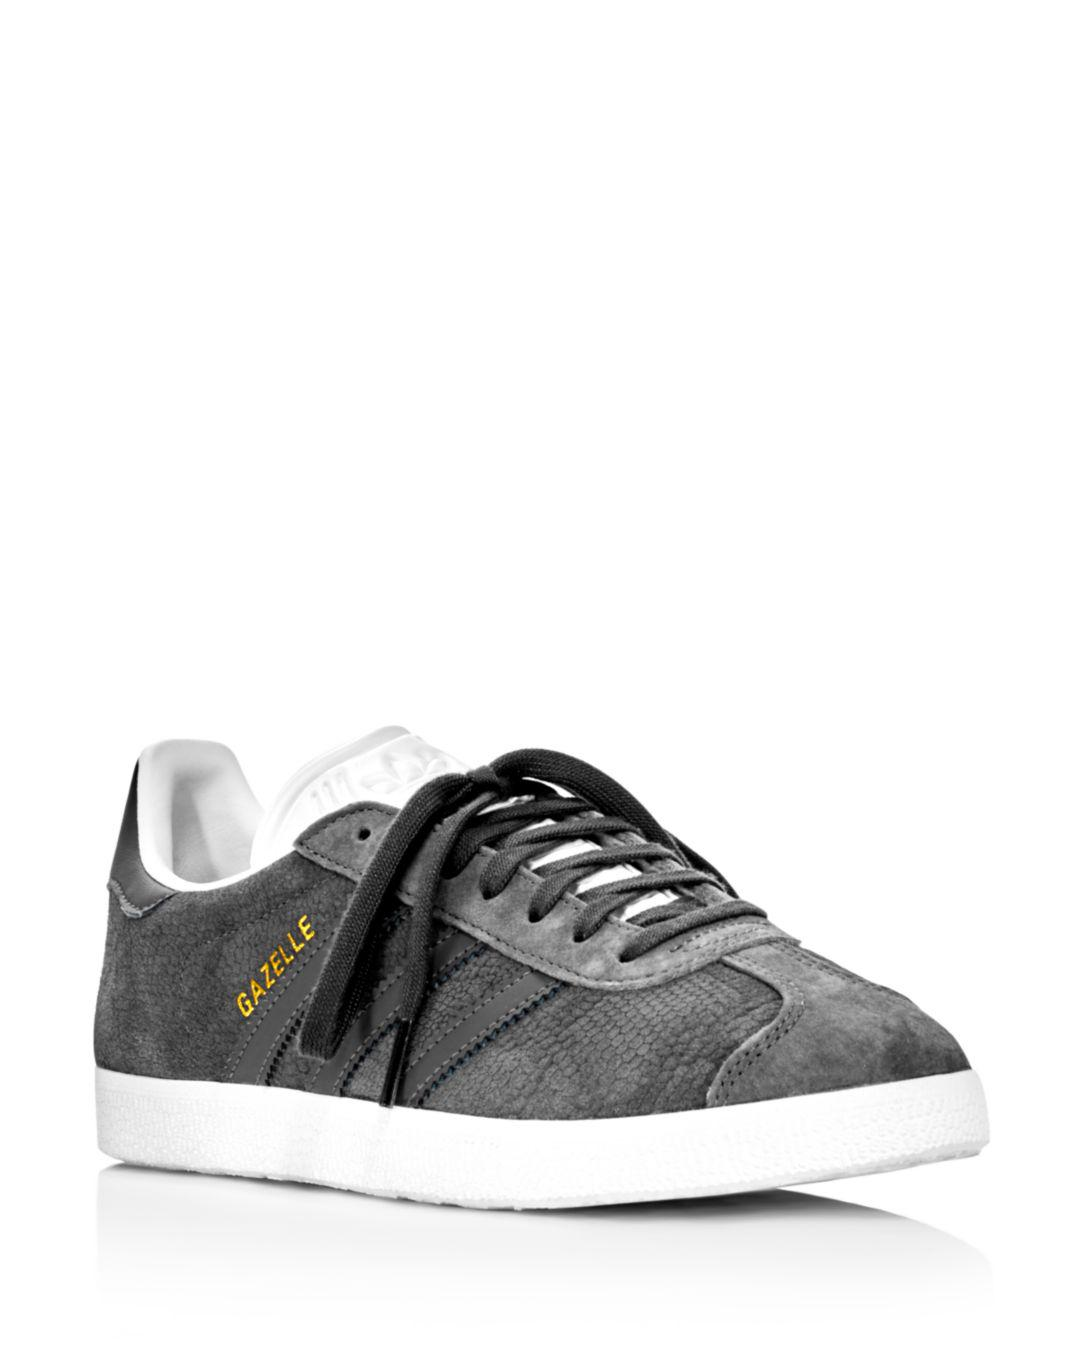 2a1573b843a3 Lyst - adidas Women s Gazelle Embossed Suede Lace Up Sneakers in ...